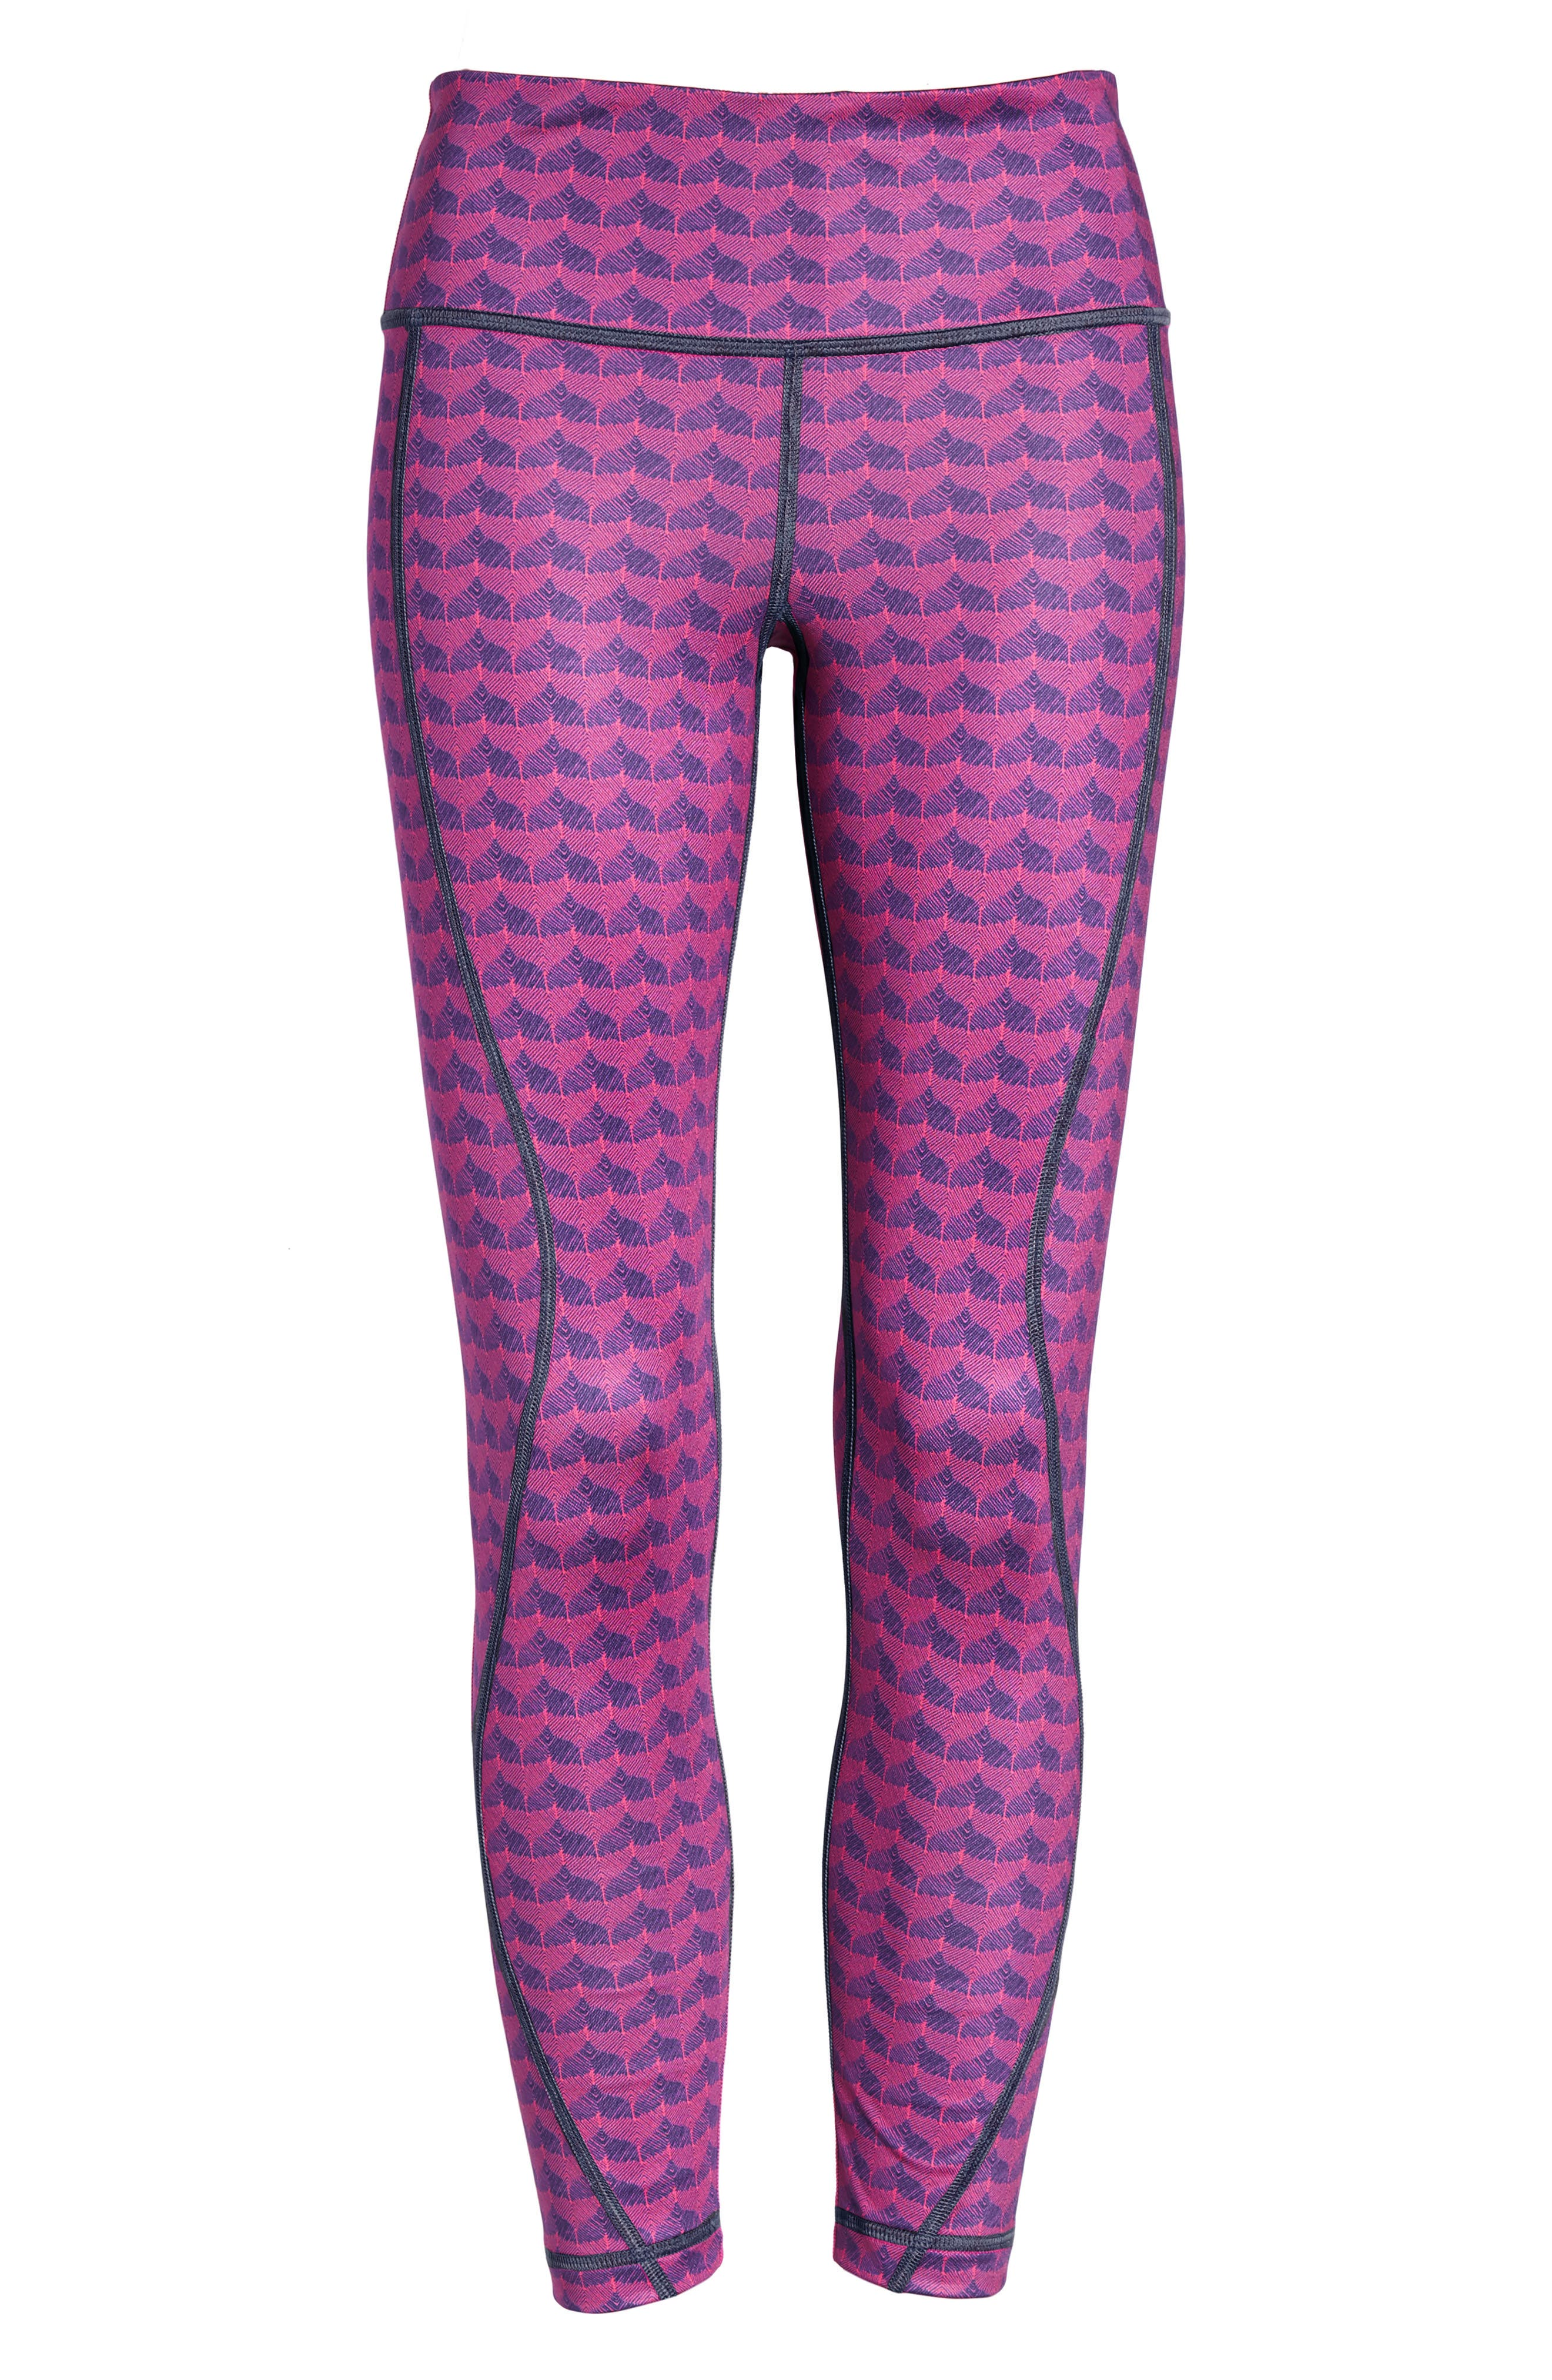 Etched Whale Tail Performance Leggings,                             Alternate thumbnail 6, color,                             Pink